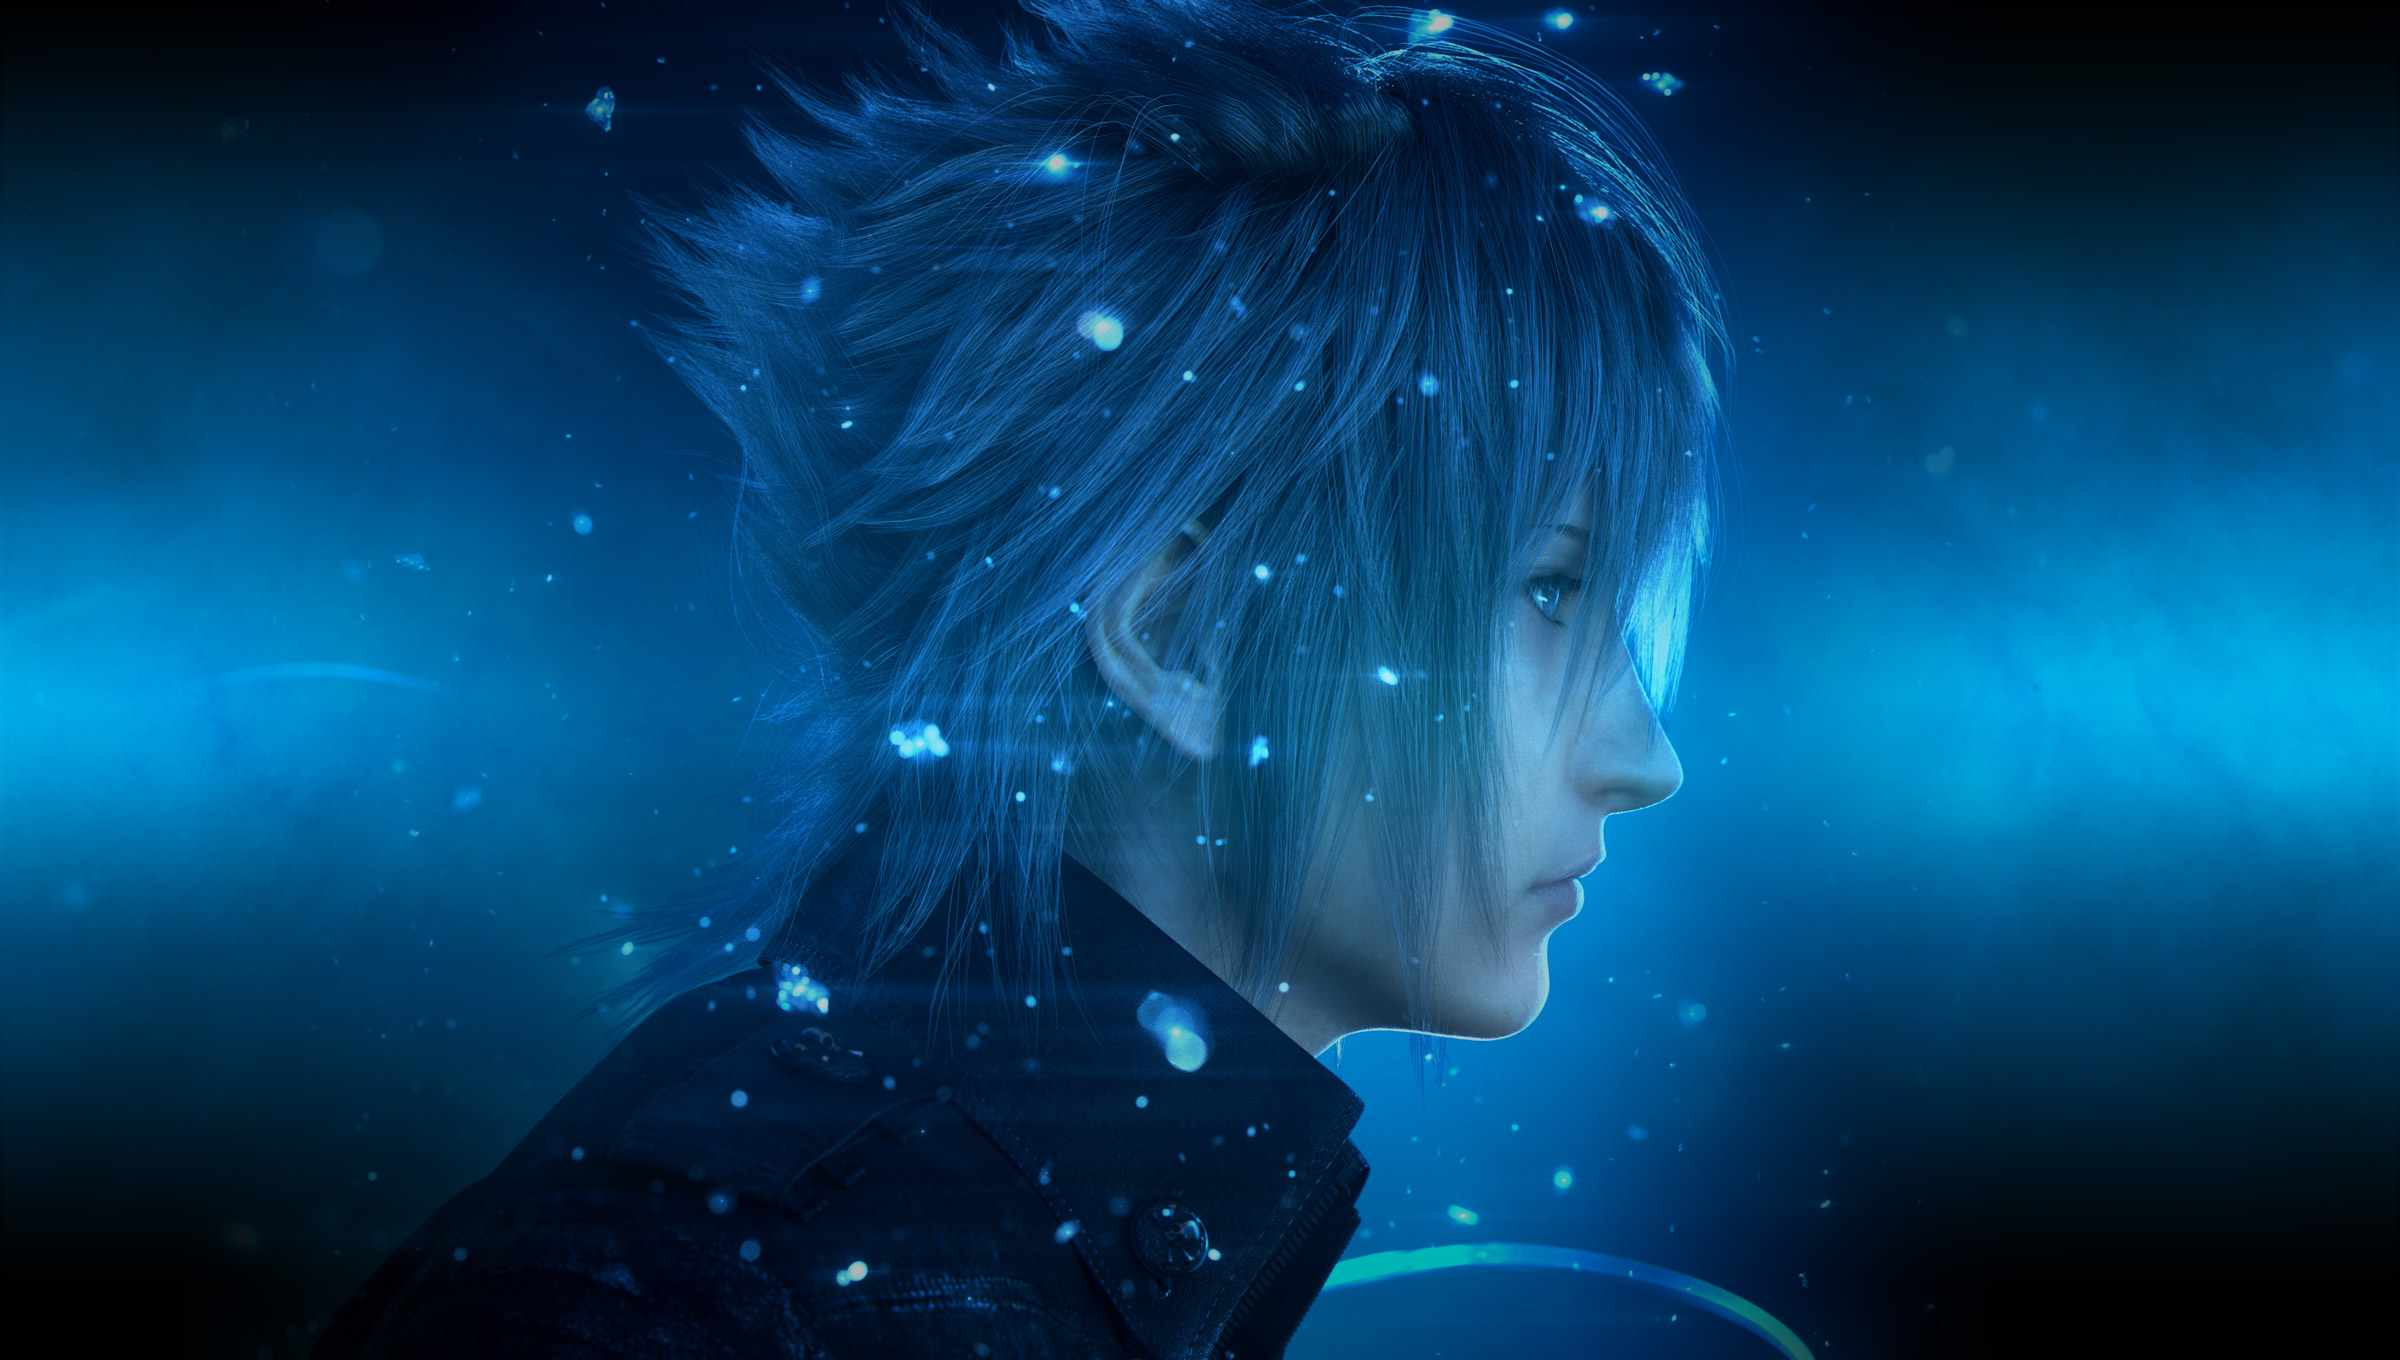 Final Fantasy XV Images Noctis Wallpaper HD And Background Photos